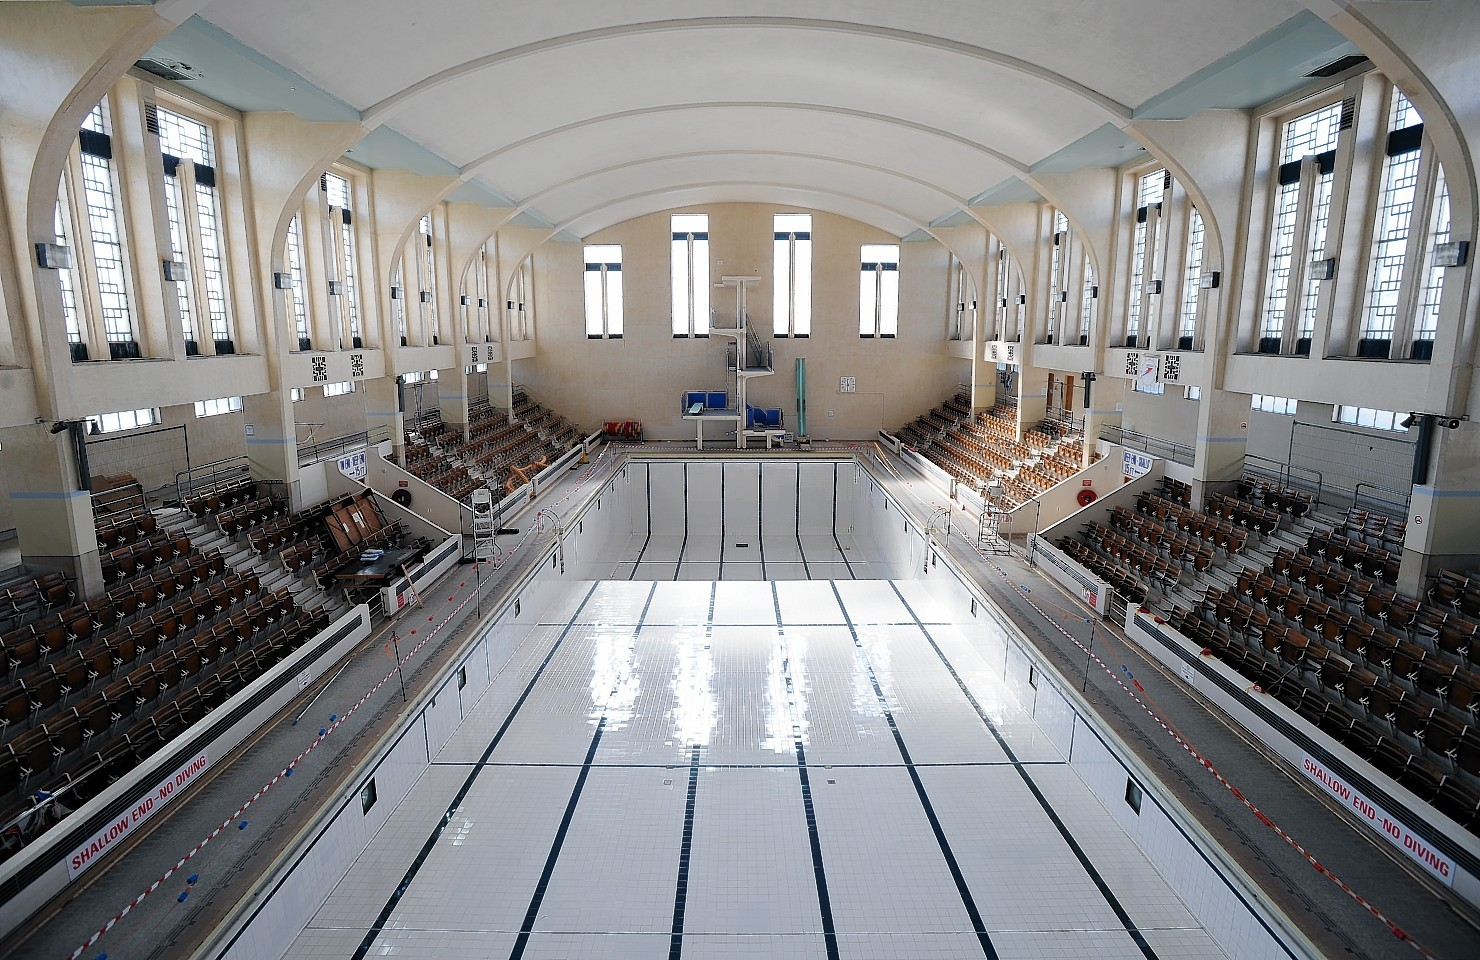 The baths were closed by the council in 2008